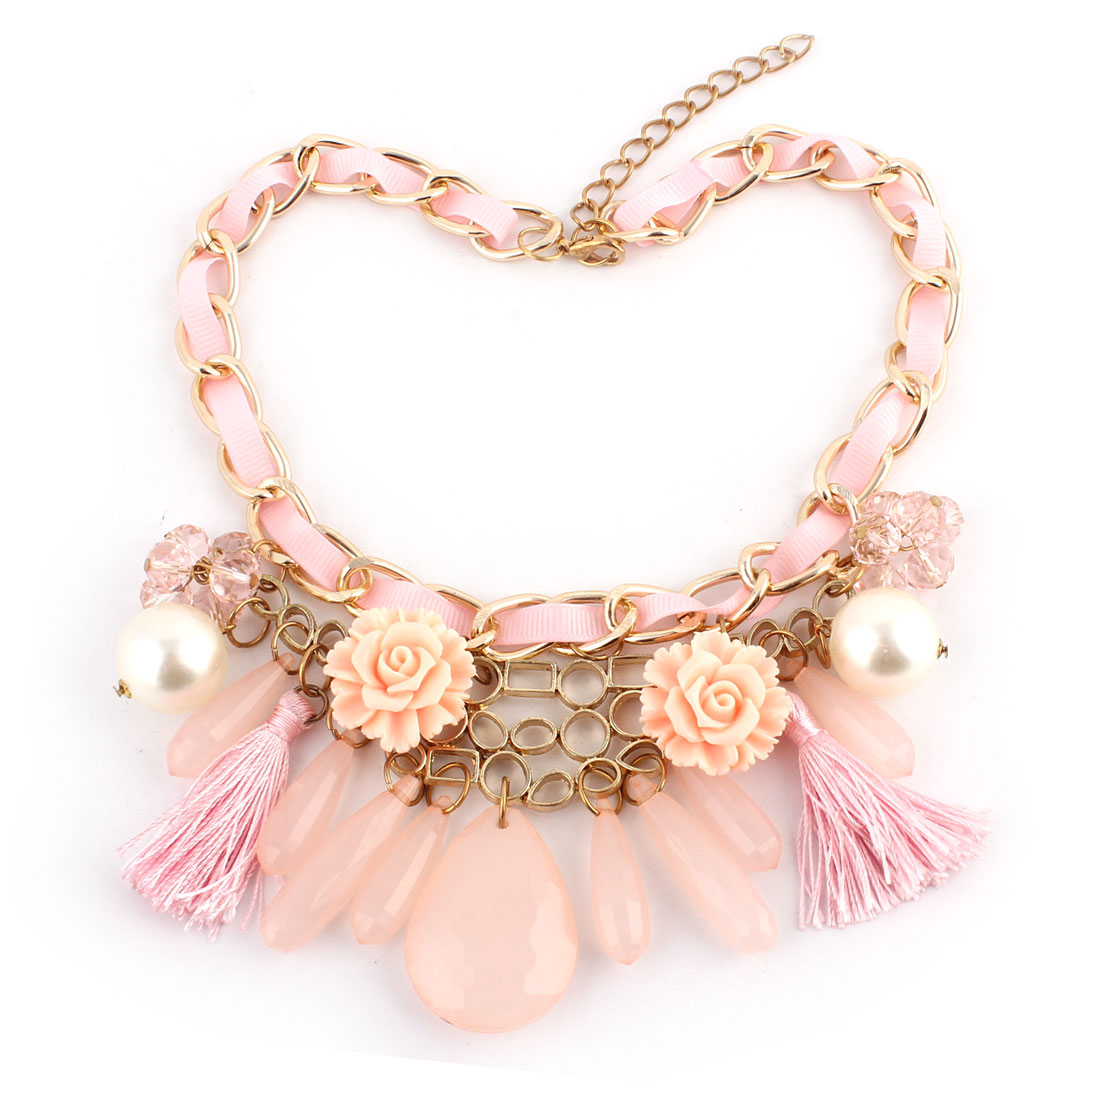 Water-drop Shape Pendant Beads Flower Tassels Decor Lobster Clasp Chain Necklace